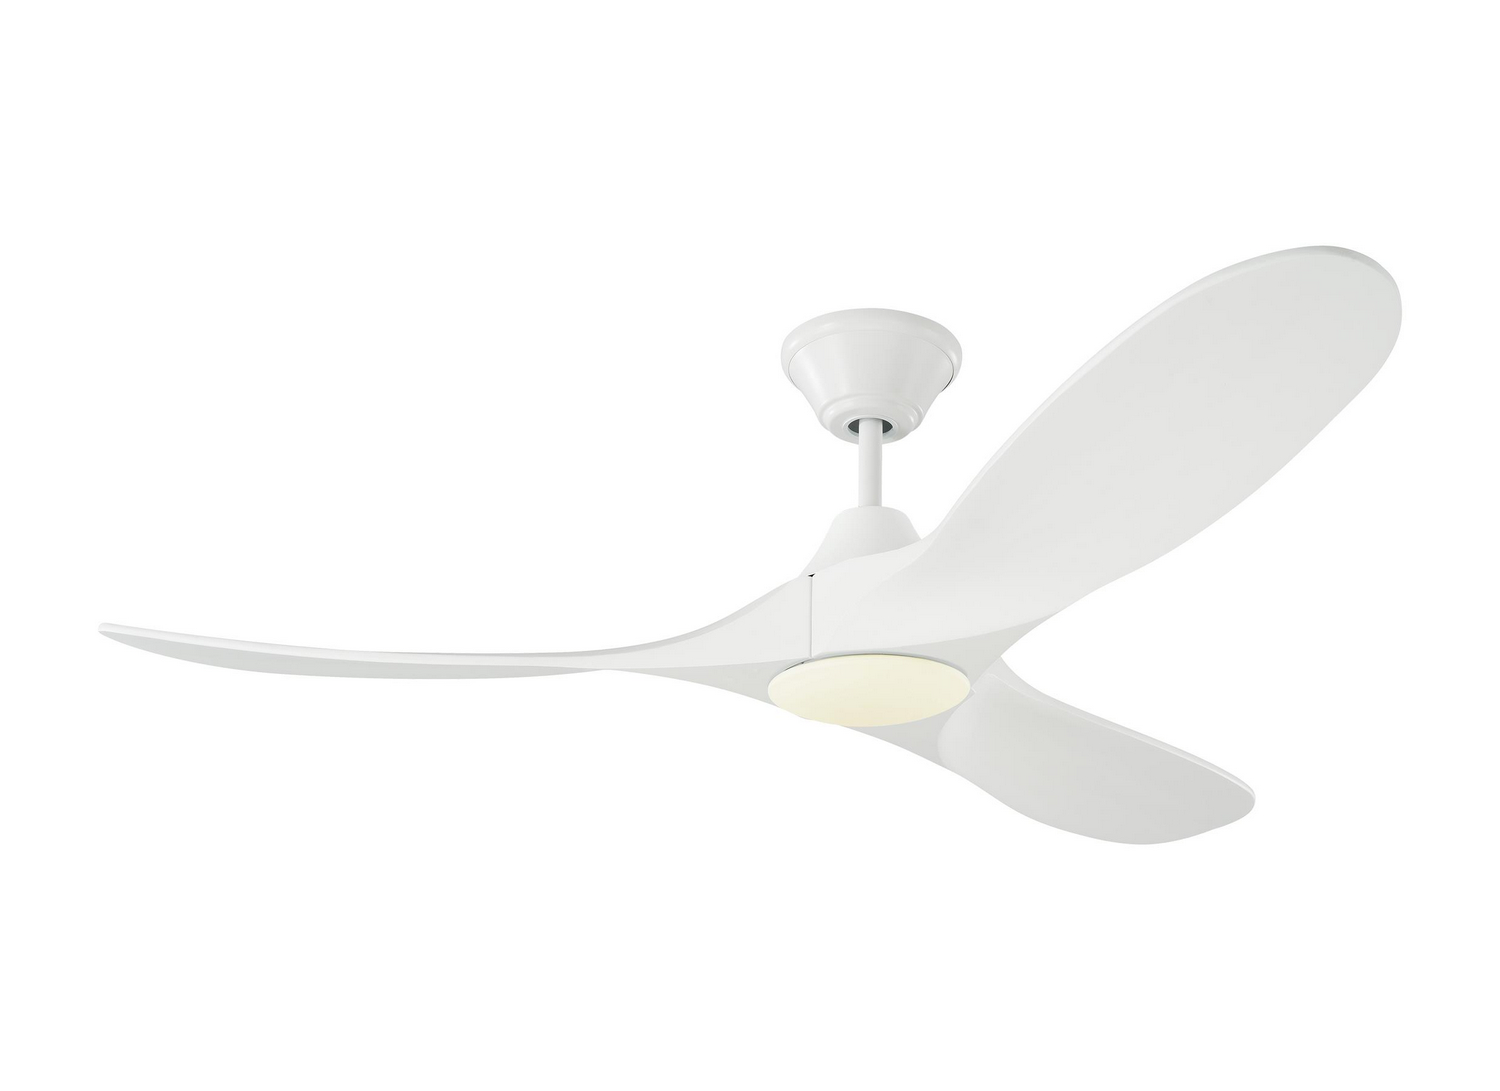 52 inchCeiling Fan from the Maverick II LED collection by Monte Carlo 3MAVR52RZWD